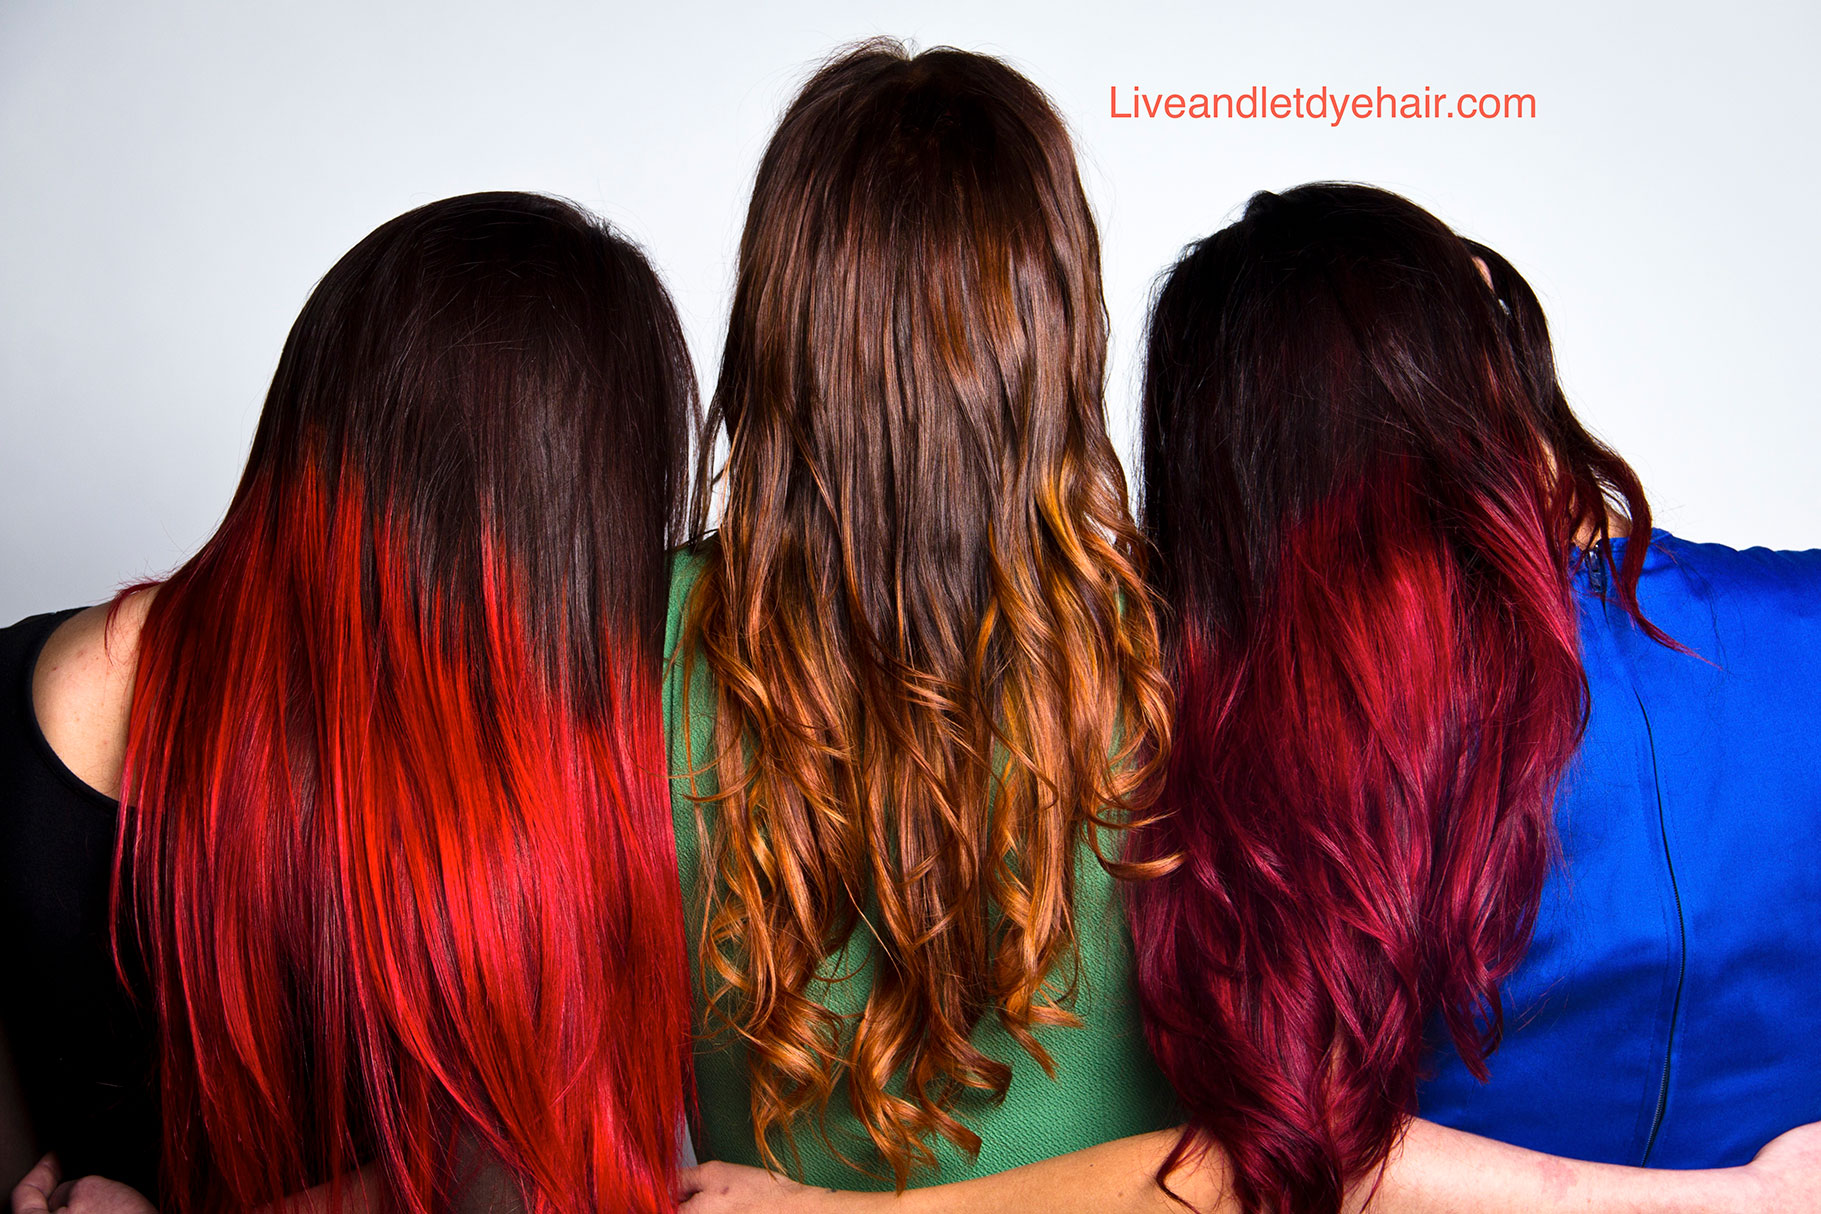 Ombre, Sombre or Balayage? - Live and Let Dye Hair